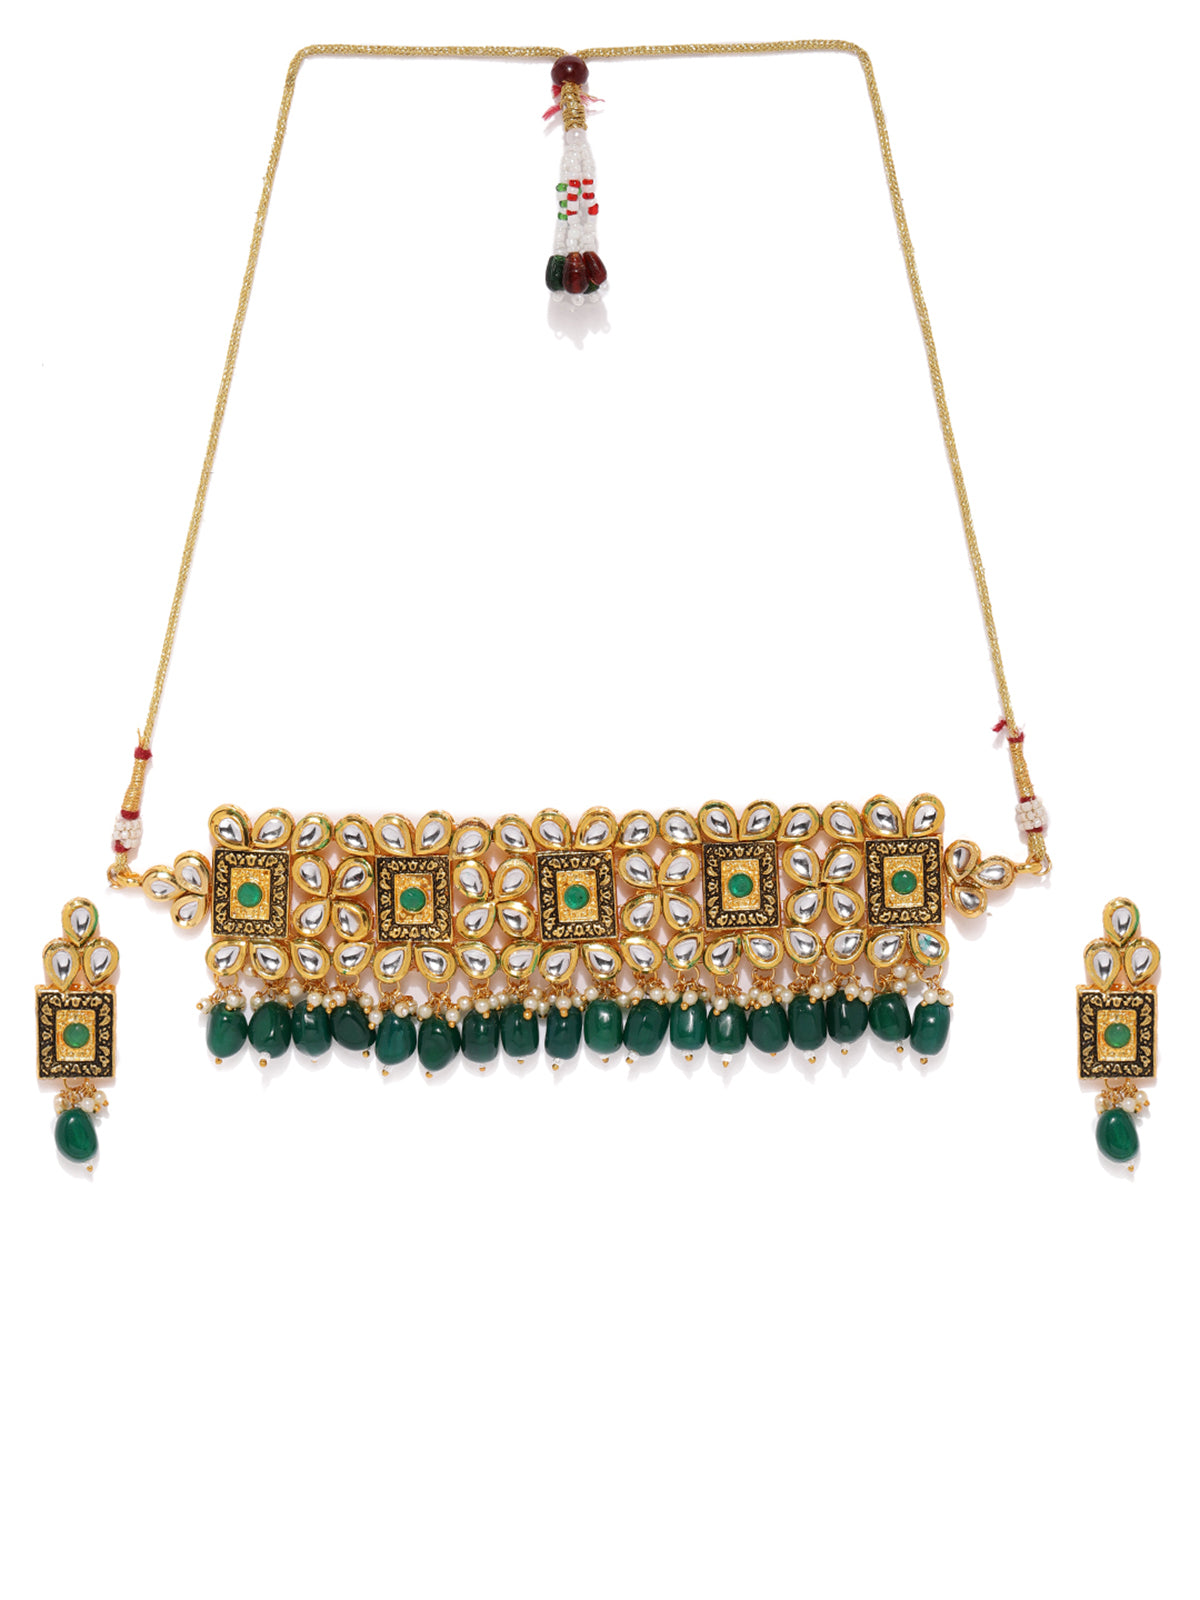 Zaveri Pearls Gold Tone Kundan And Dangling Green Beads Choker Necklace Set-ZAVERI PEARLS1-Necklace Set